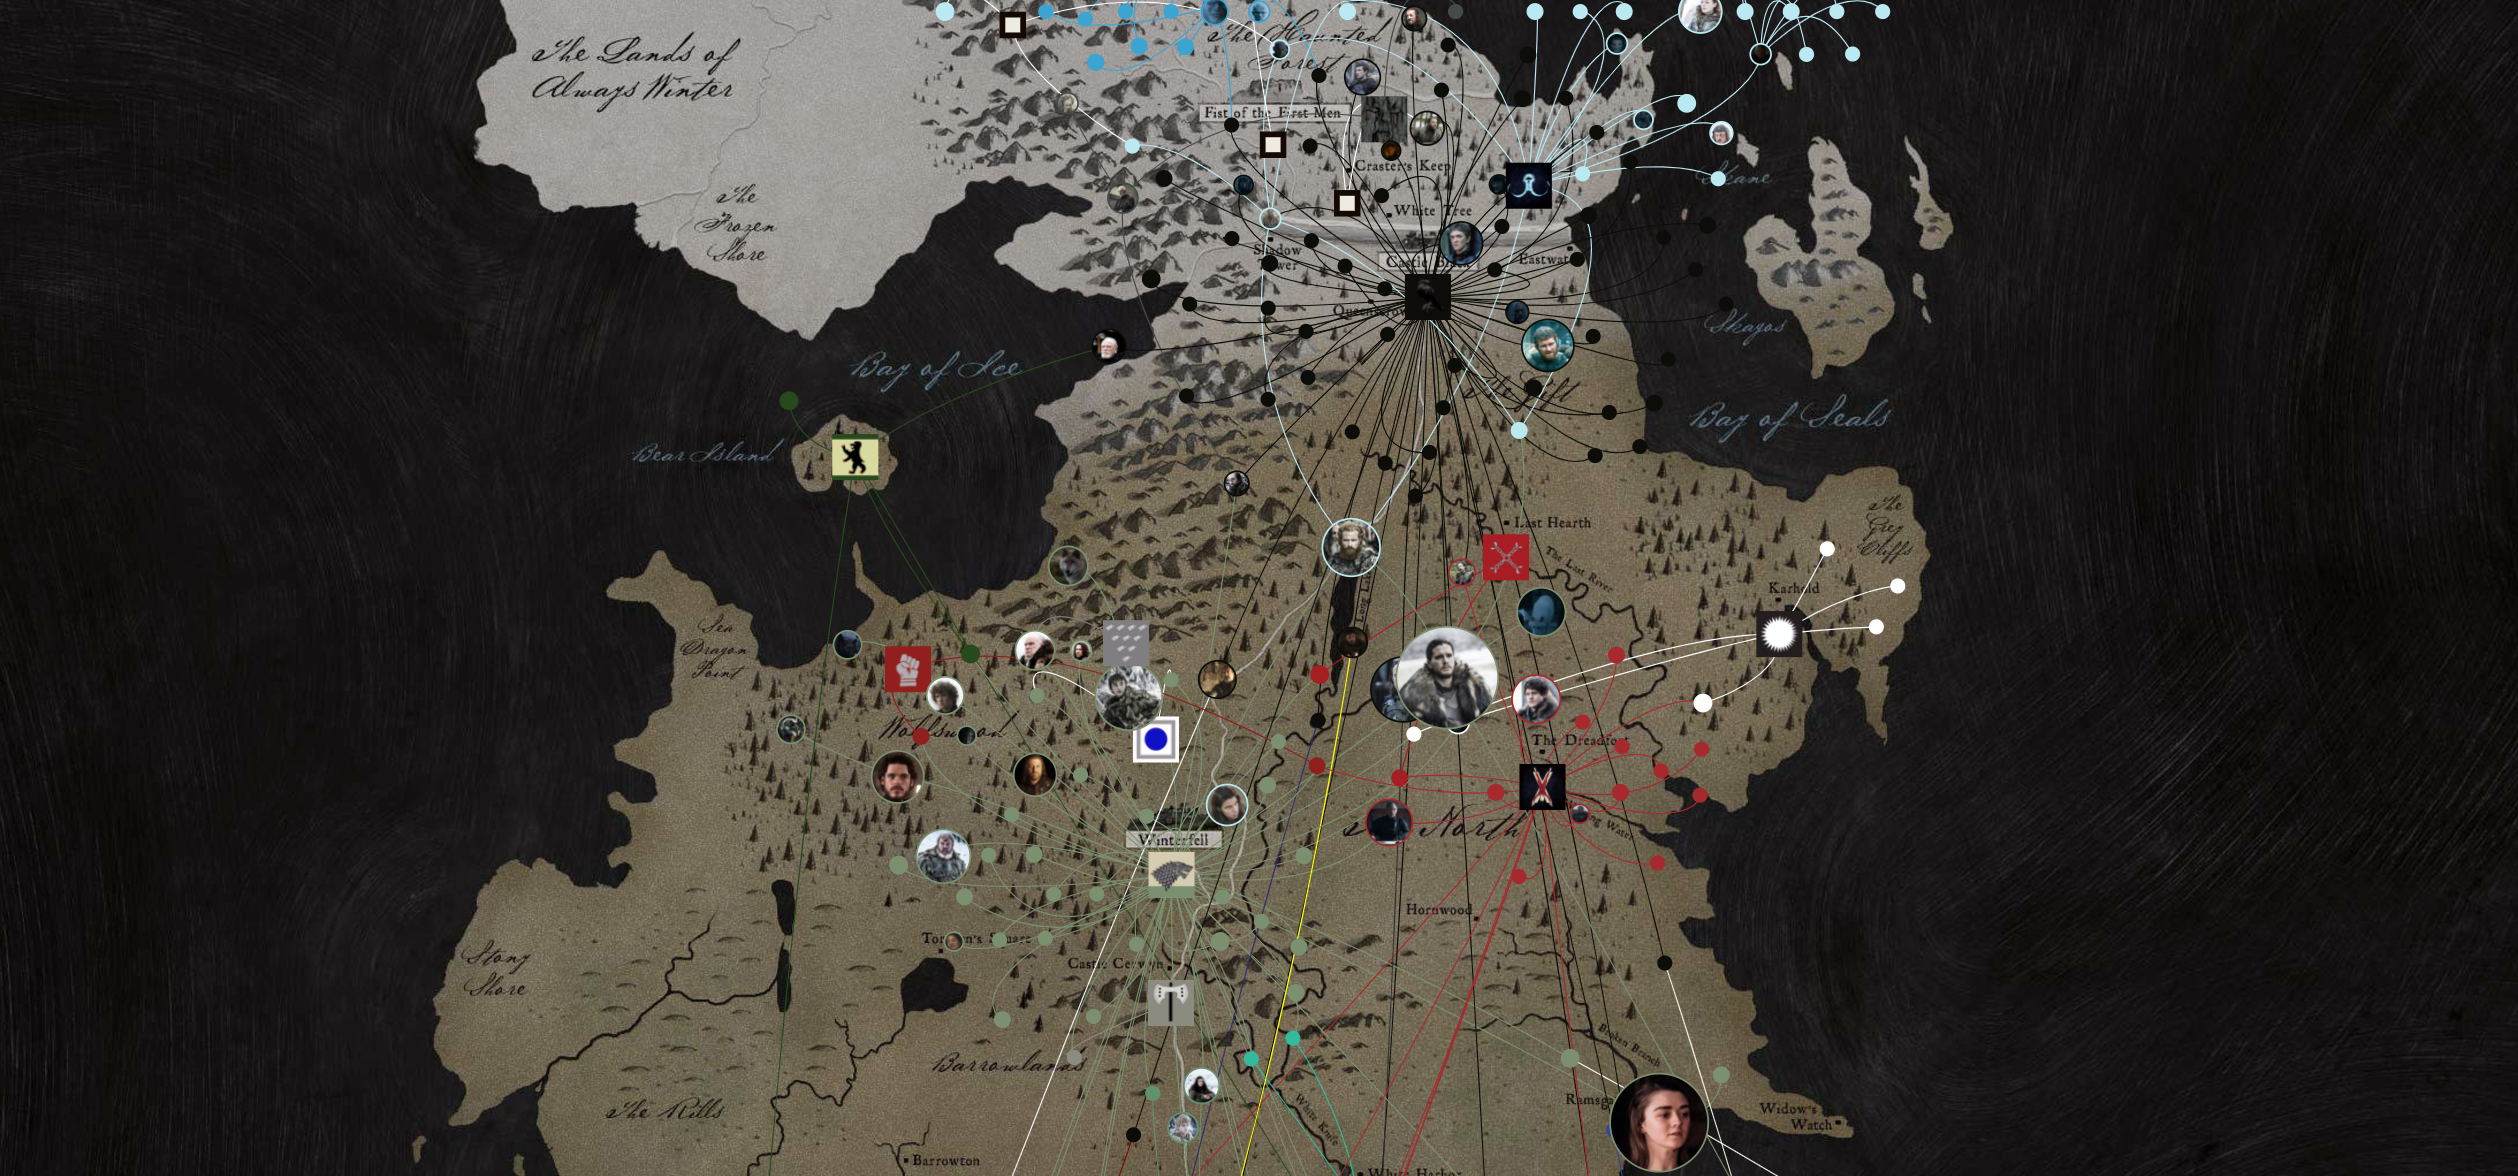 Fan-Made 'Game of Thrones' Map Shows the Allegiances of ... on the prince of winterfell, game of thrones - season 2, a feast for crows, a clash of kings houses map, fire and ice book map, a storm of swords, kolkata city map, upside down world map, ww2 map, throne of bones map, lord snow, alfie owen-allen, george r. r. martin, king of thrones map, see your house map, a golden crown, crown of thrones map, walking dead map, a dance with dragons, dothraki language, winter is coming, tales of dunk and egg, usa map, guild wars 2 map, ice and fire world map, fire and blood, the winds of winter, game of thrones - season 1, a song of ice and fire, antarctic peninsula map, calabria italy map, a clash of kings, house targaryen, gameof thrones map, gsme of thrones map,